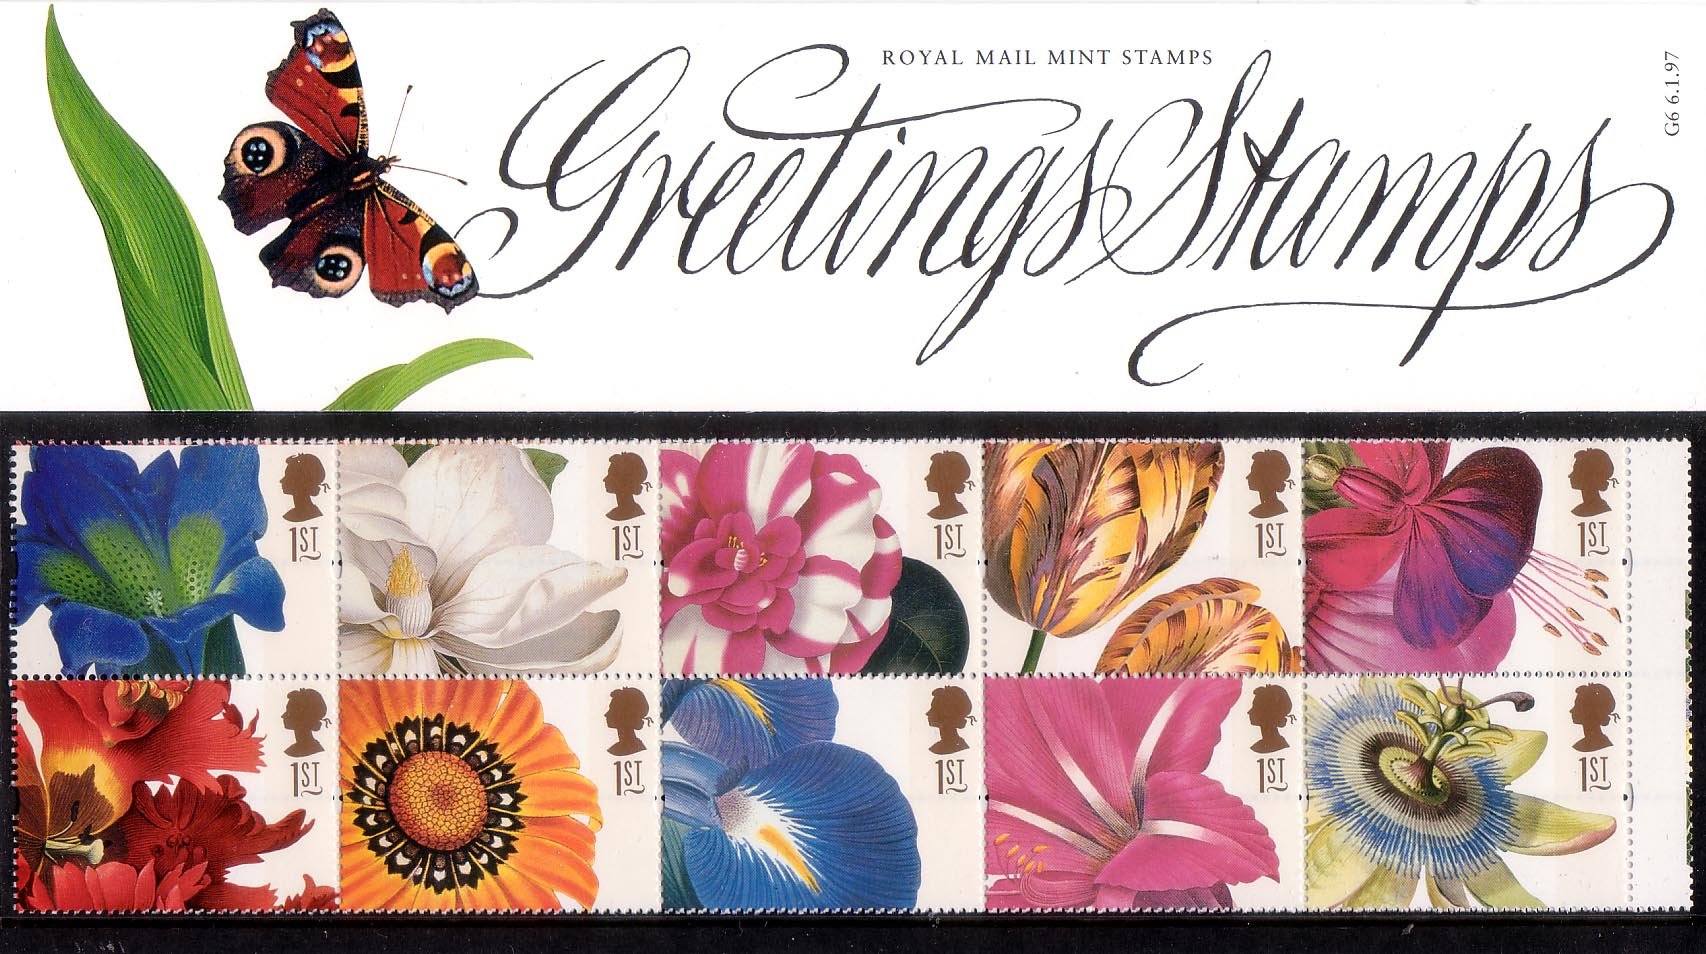 Greetings stamps 1997 collect gb stamps presentation pack m4hsunfo